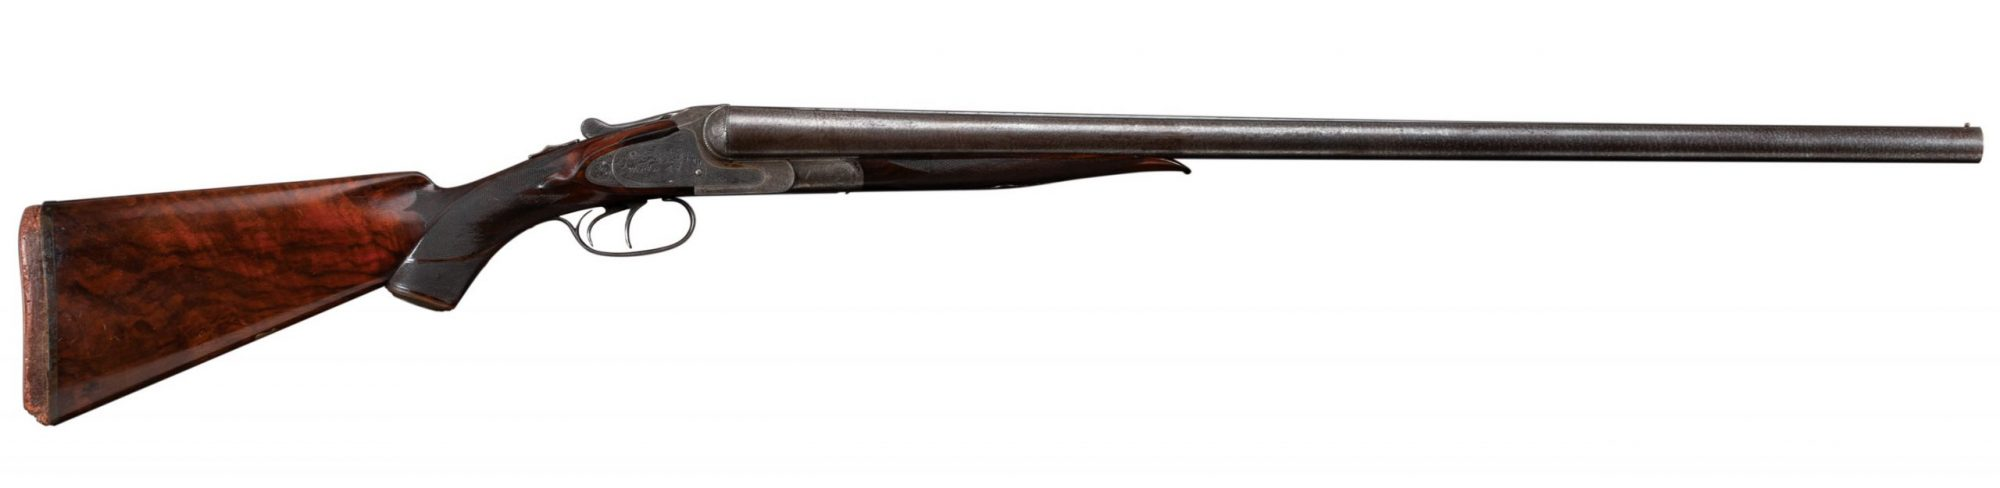 Photo of an L.C. Smith 10 gauge shotgun before restoration, by Turnbull Restoration of Bloomfield, NY